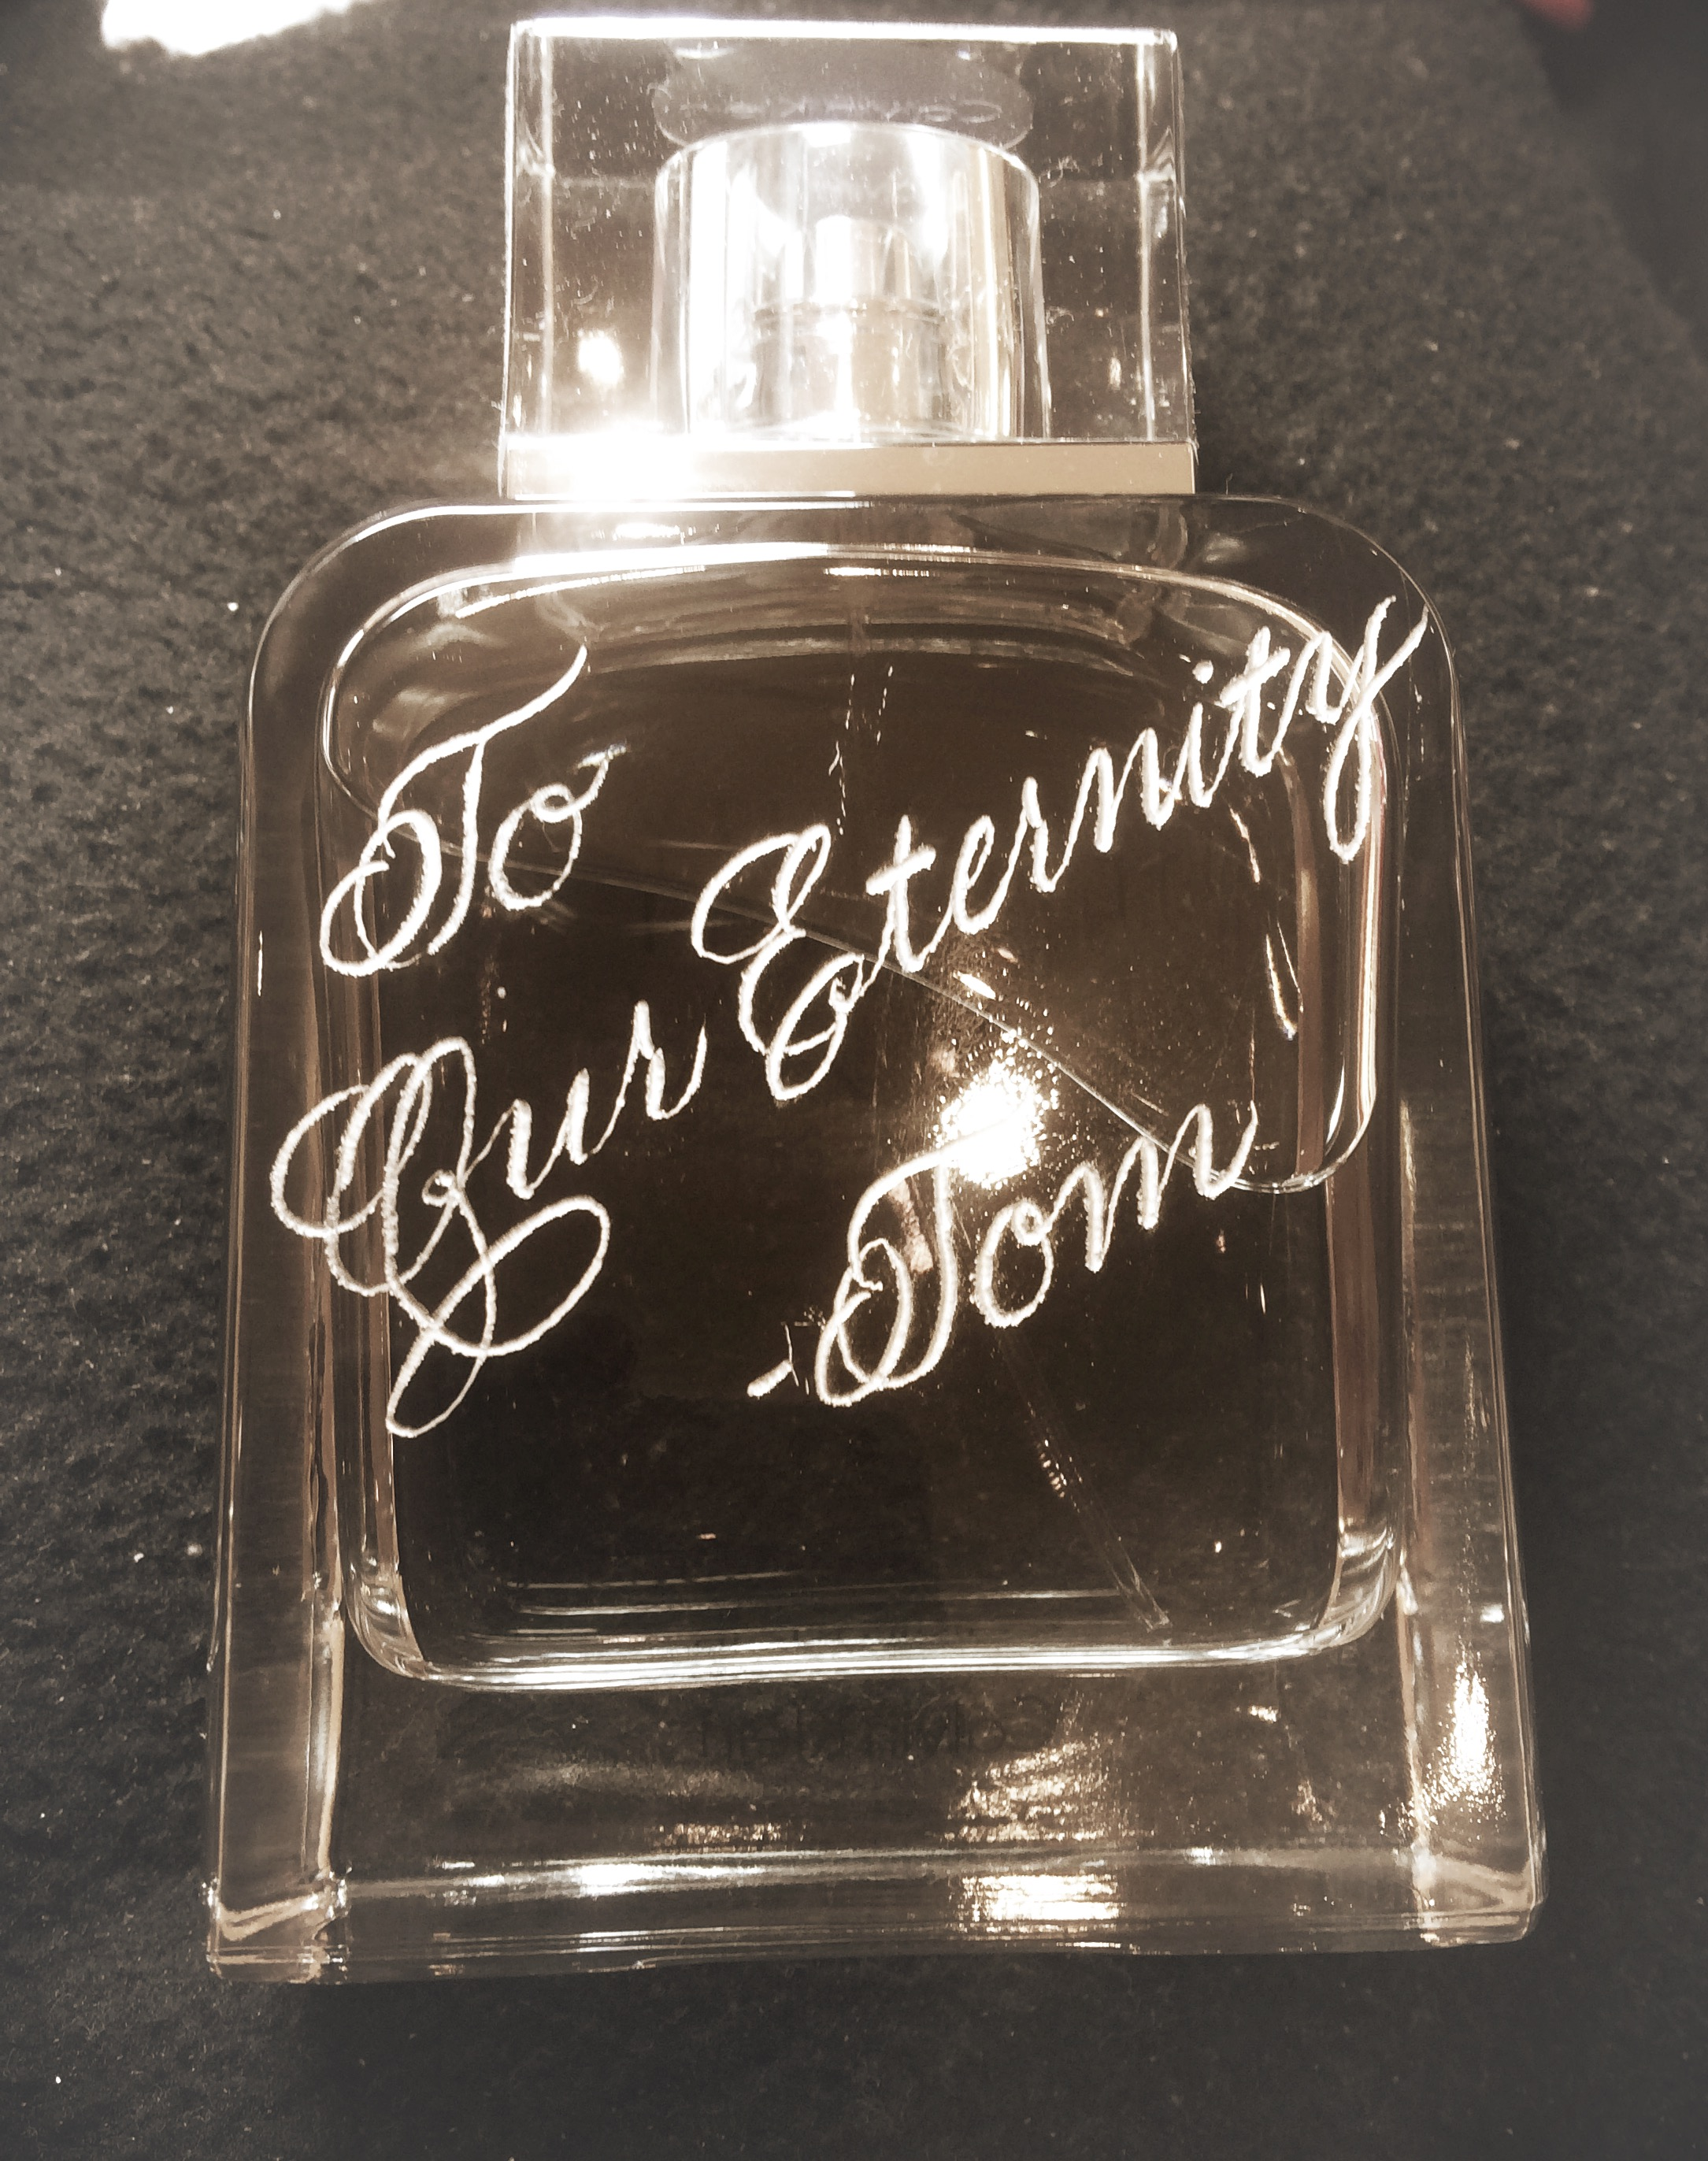 Houston Fragrance engraving engraver.JPG